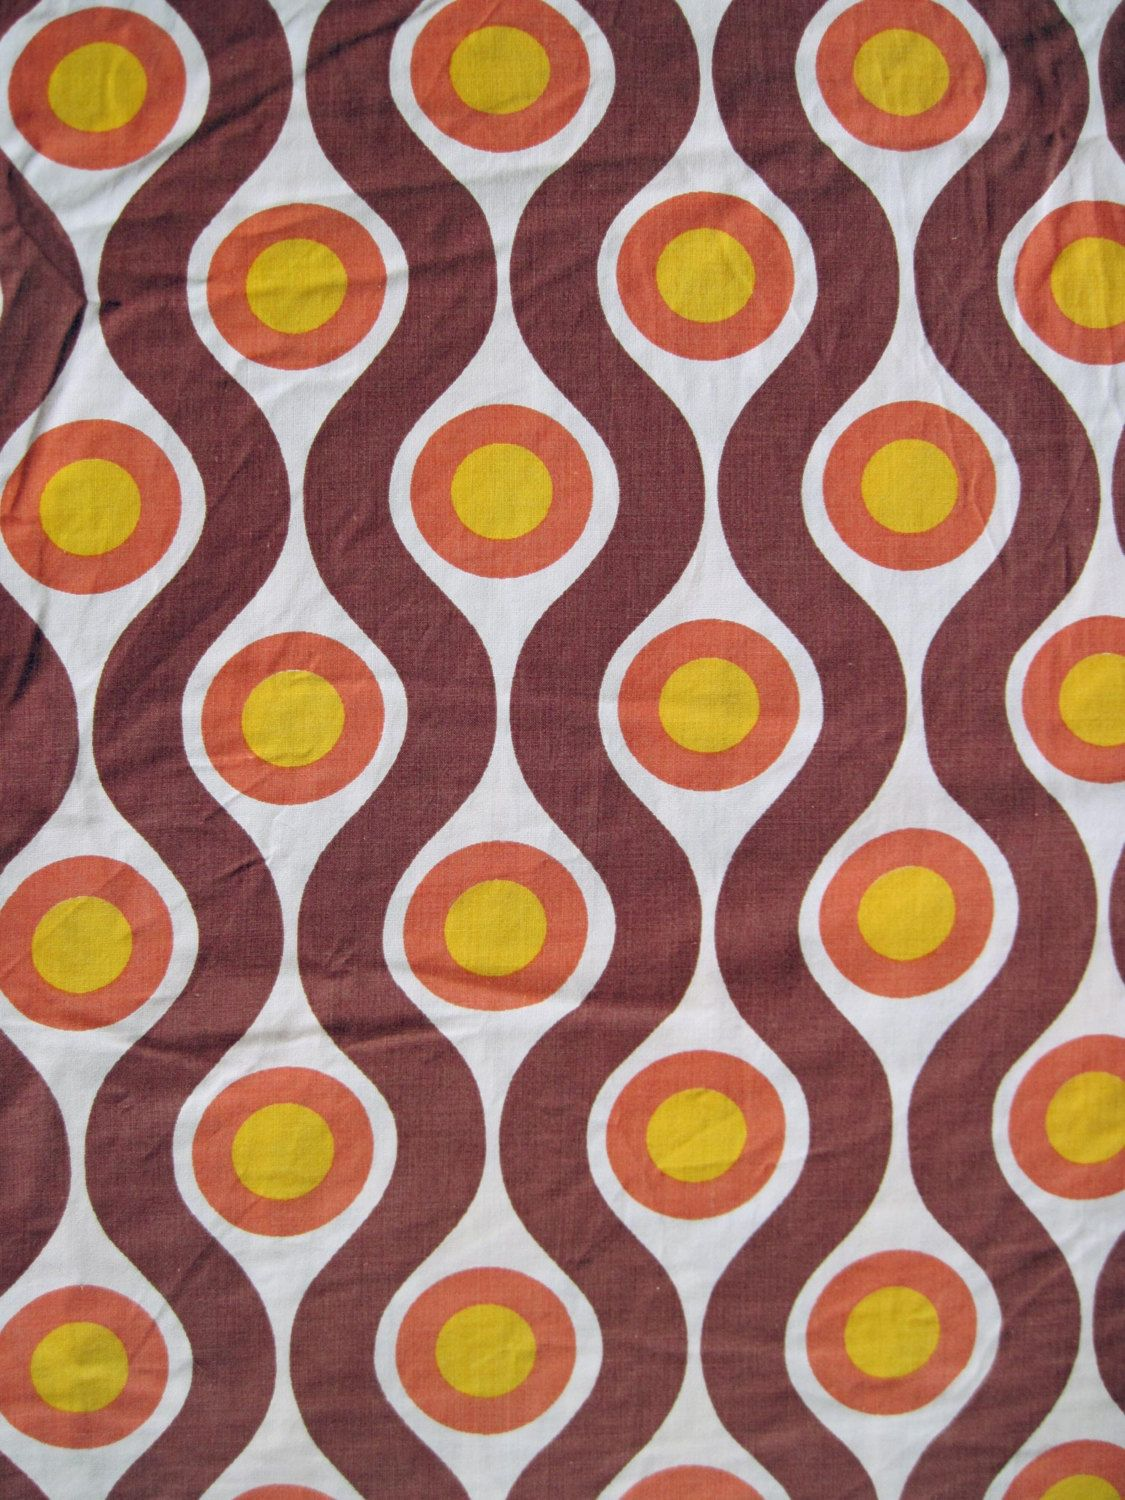 Vintage 1960s 70s fabric retro geometric pattern from for Fabric pattern